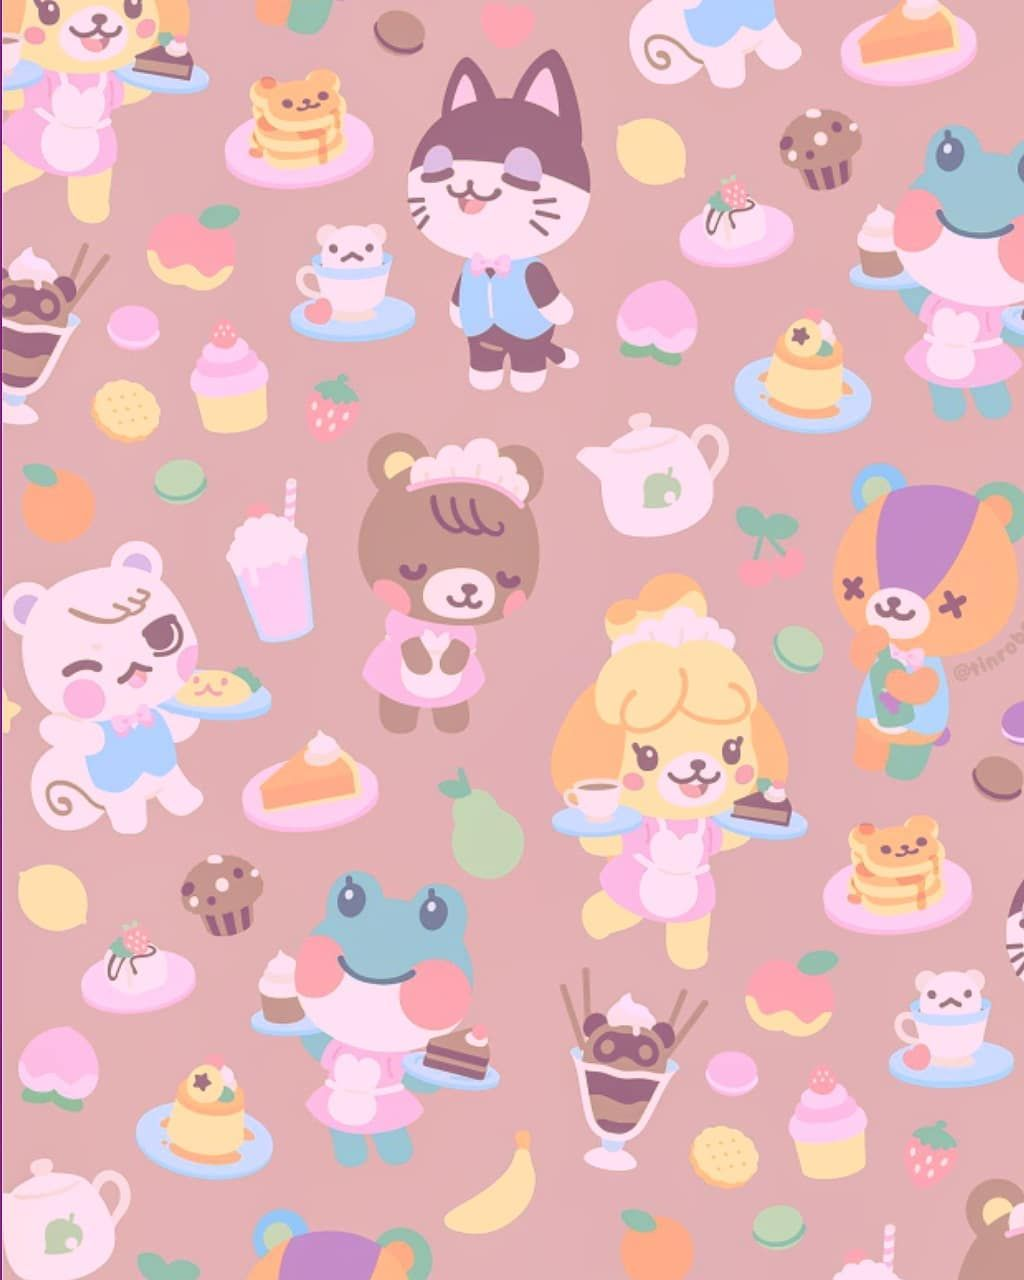 Loving This Artwork I Do Not Know The Owner Acnl Acpc Pastelqrcode 3ds Qrcod Animal Crossing Game Animal Crossing Fan Art Animal Crossing Characters